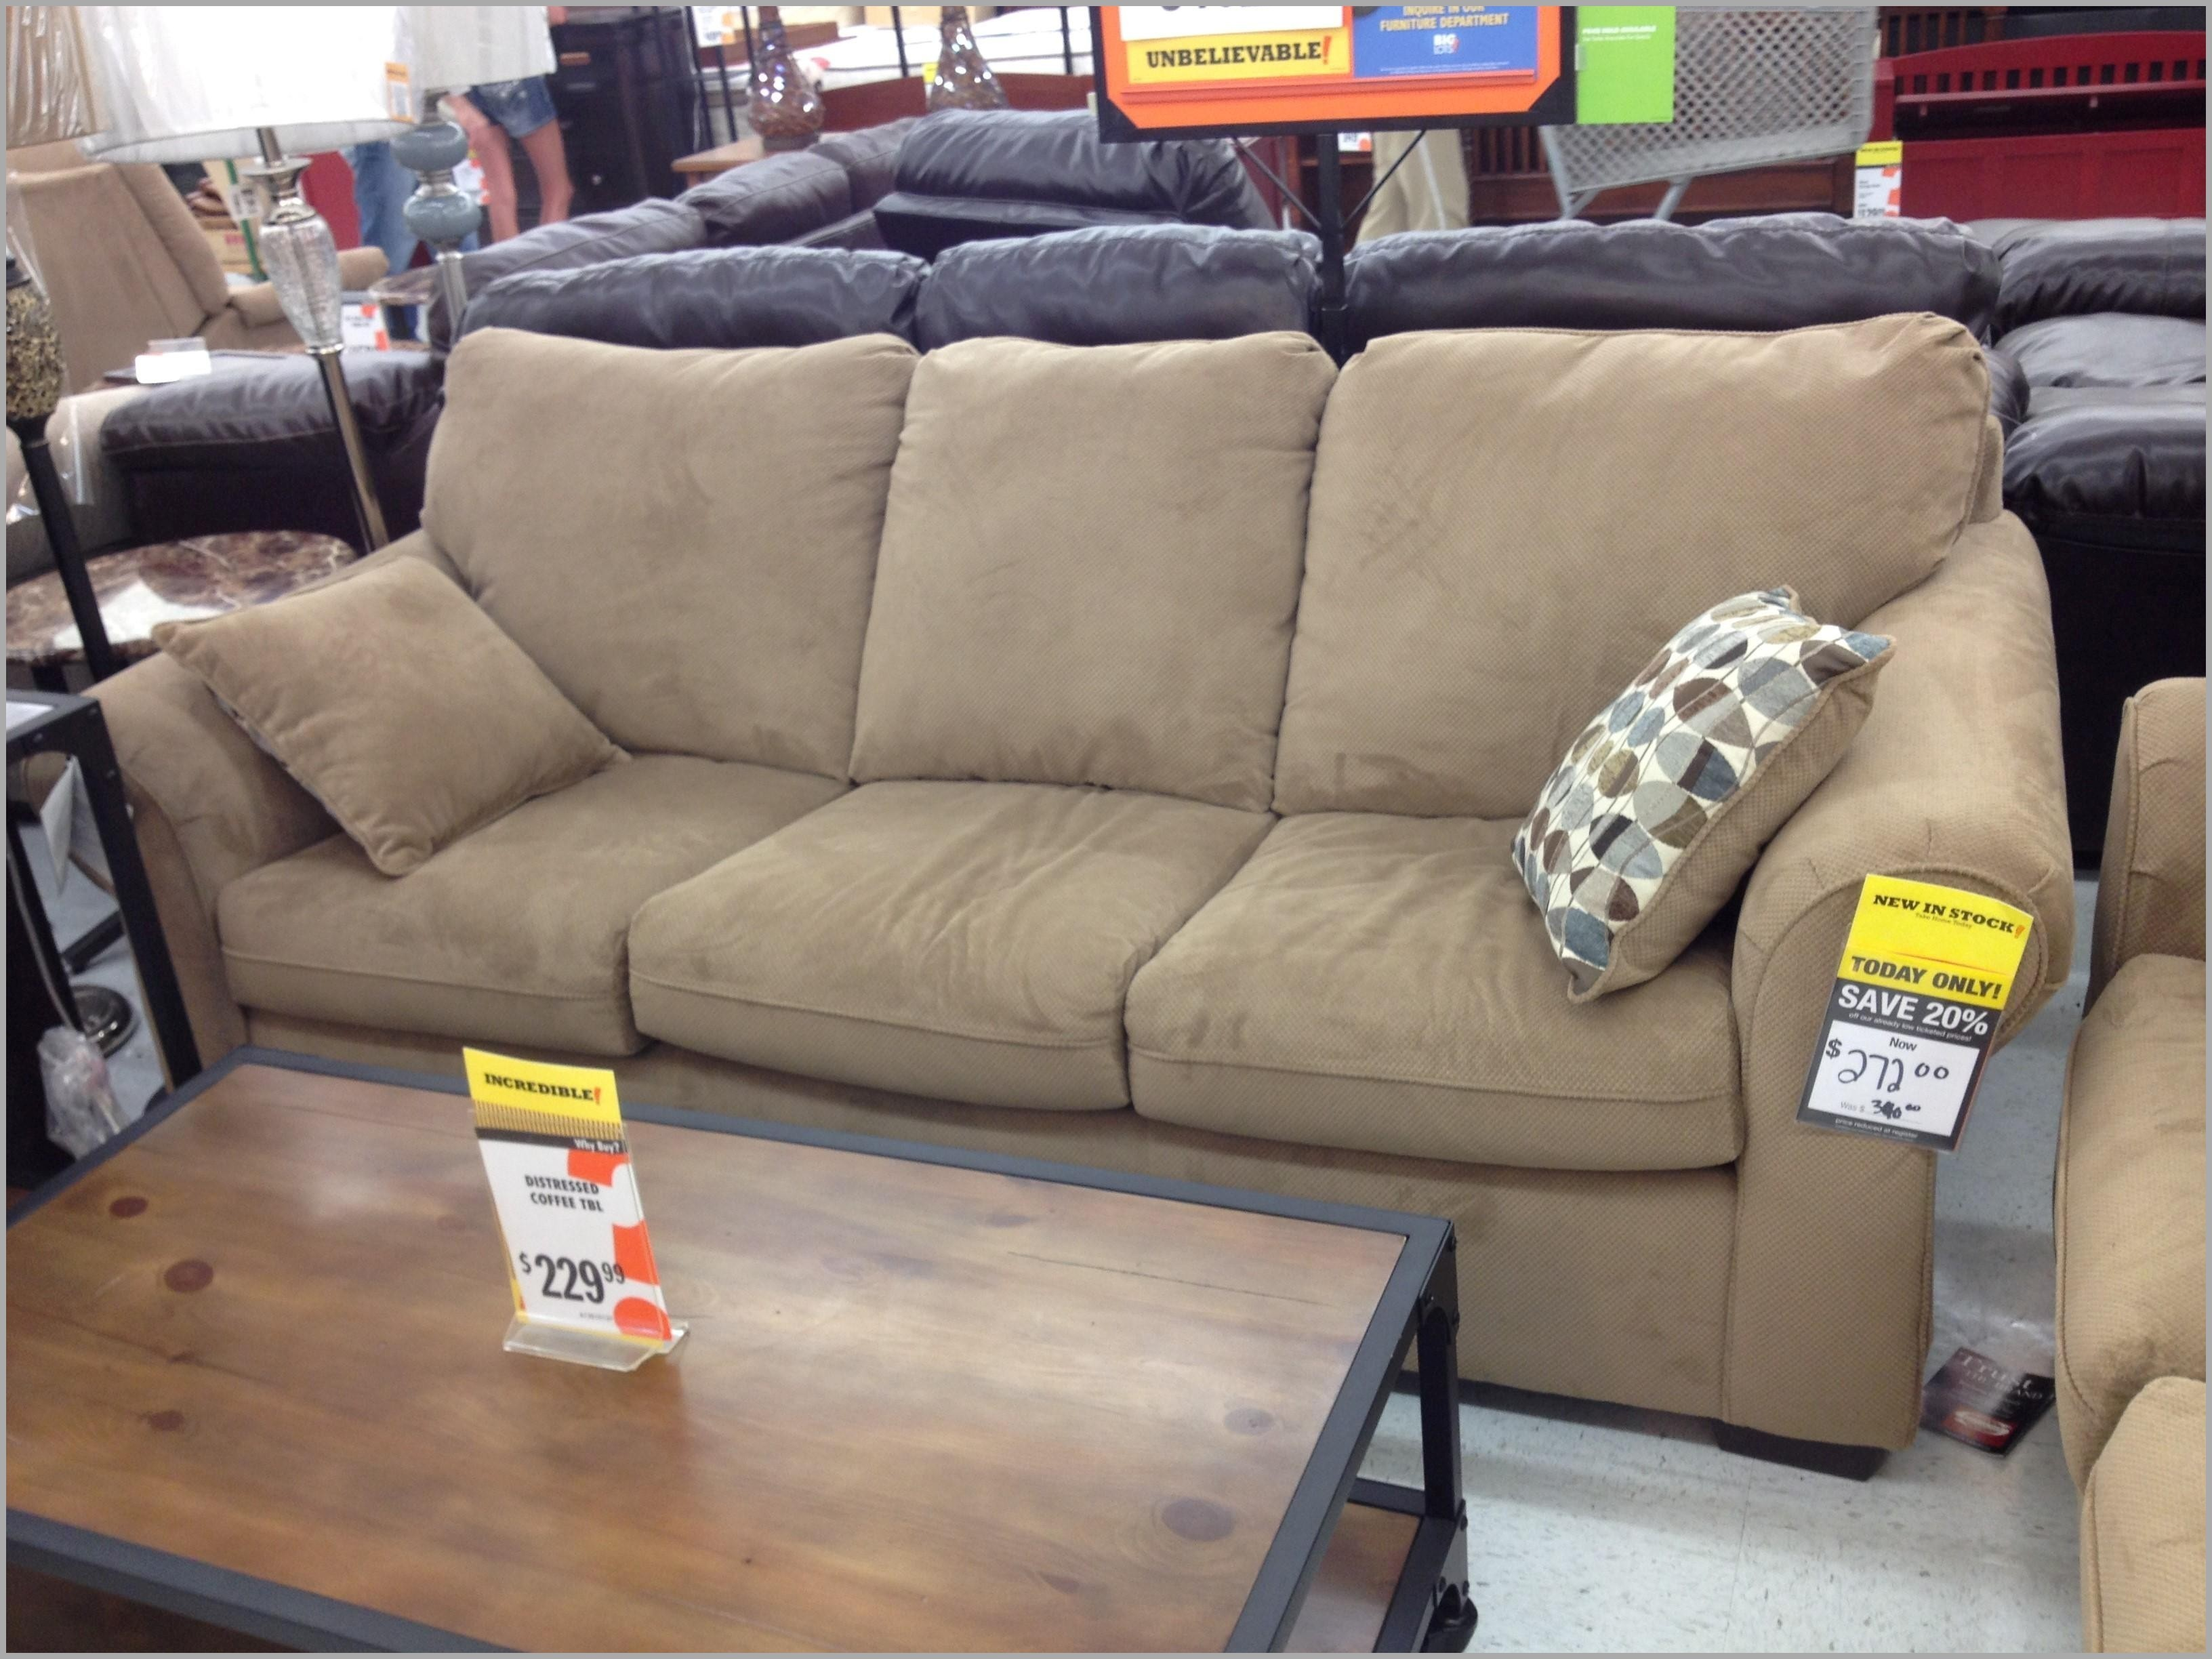 Sofas at Big Lots Lovely Simply Big Lots sofa Decorative sofa Ideas Photo